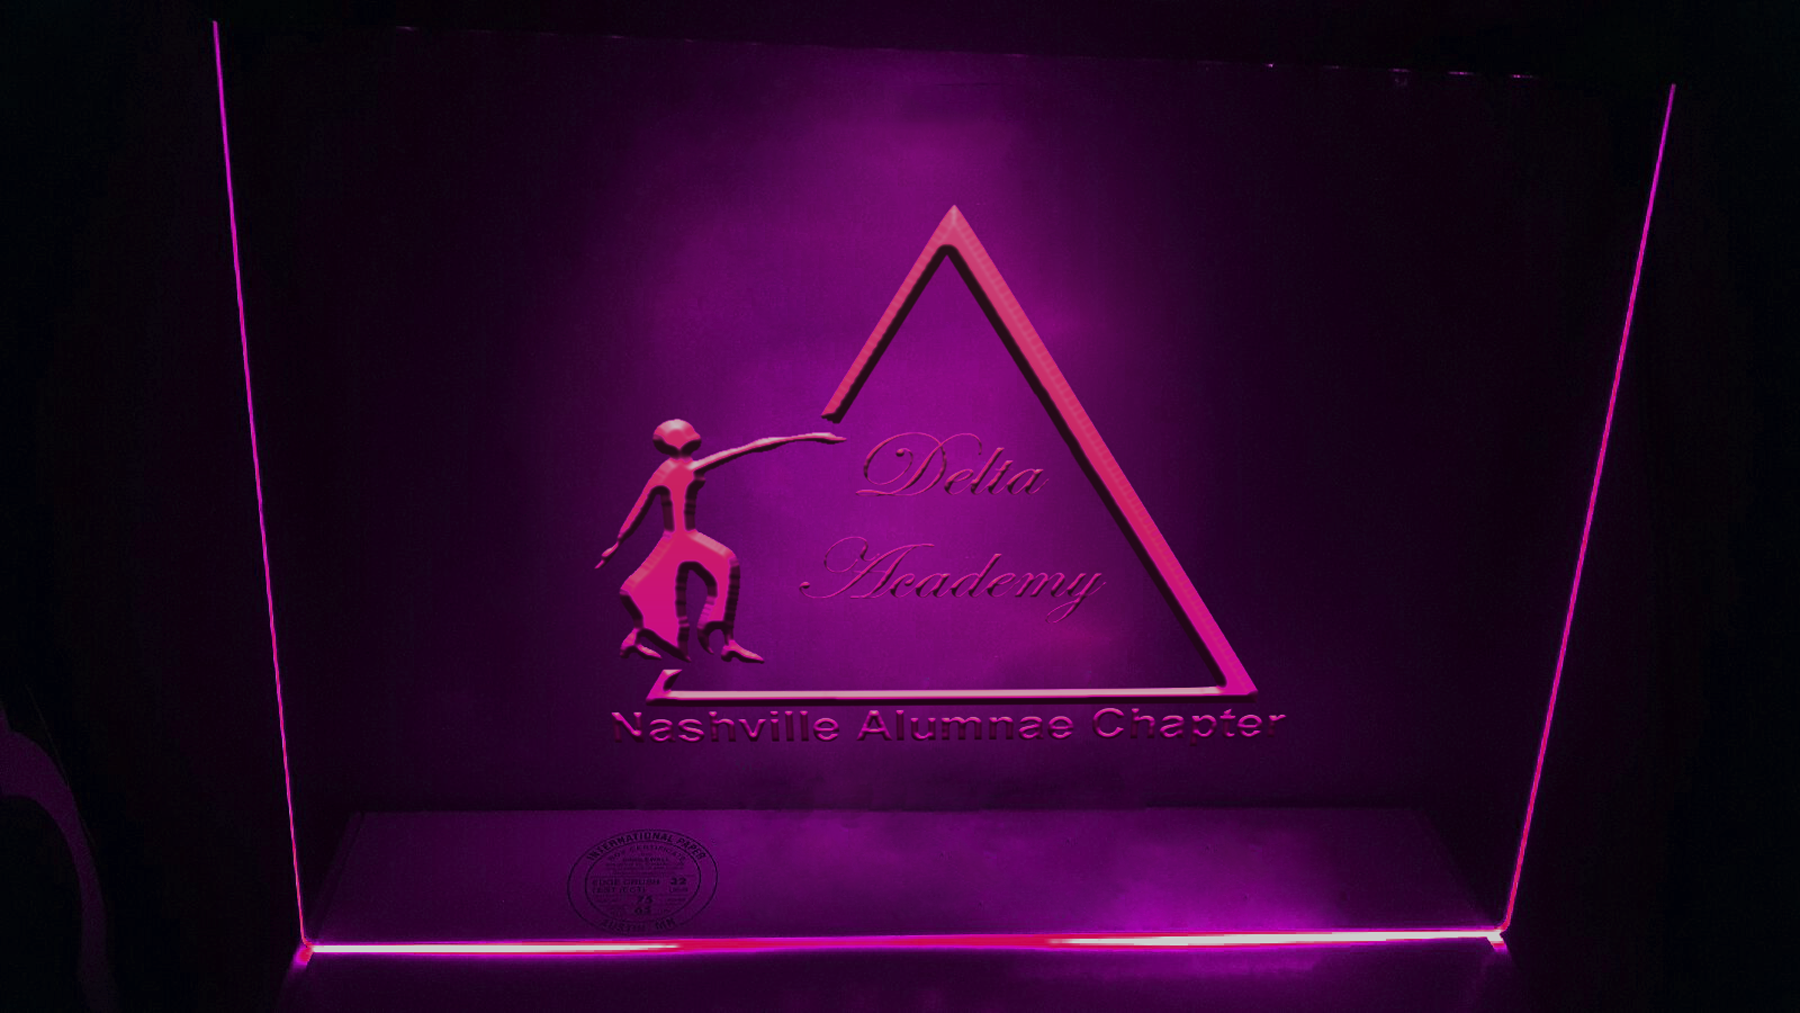 2d and 3d Logo mock ups on glass with neon glow  example image 1